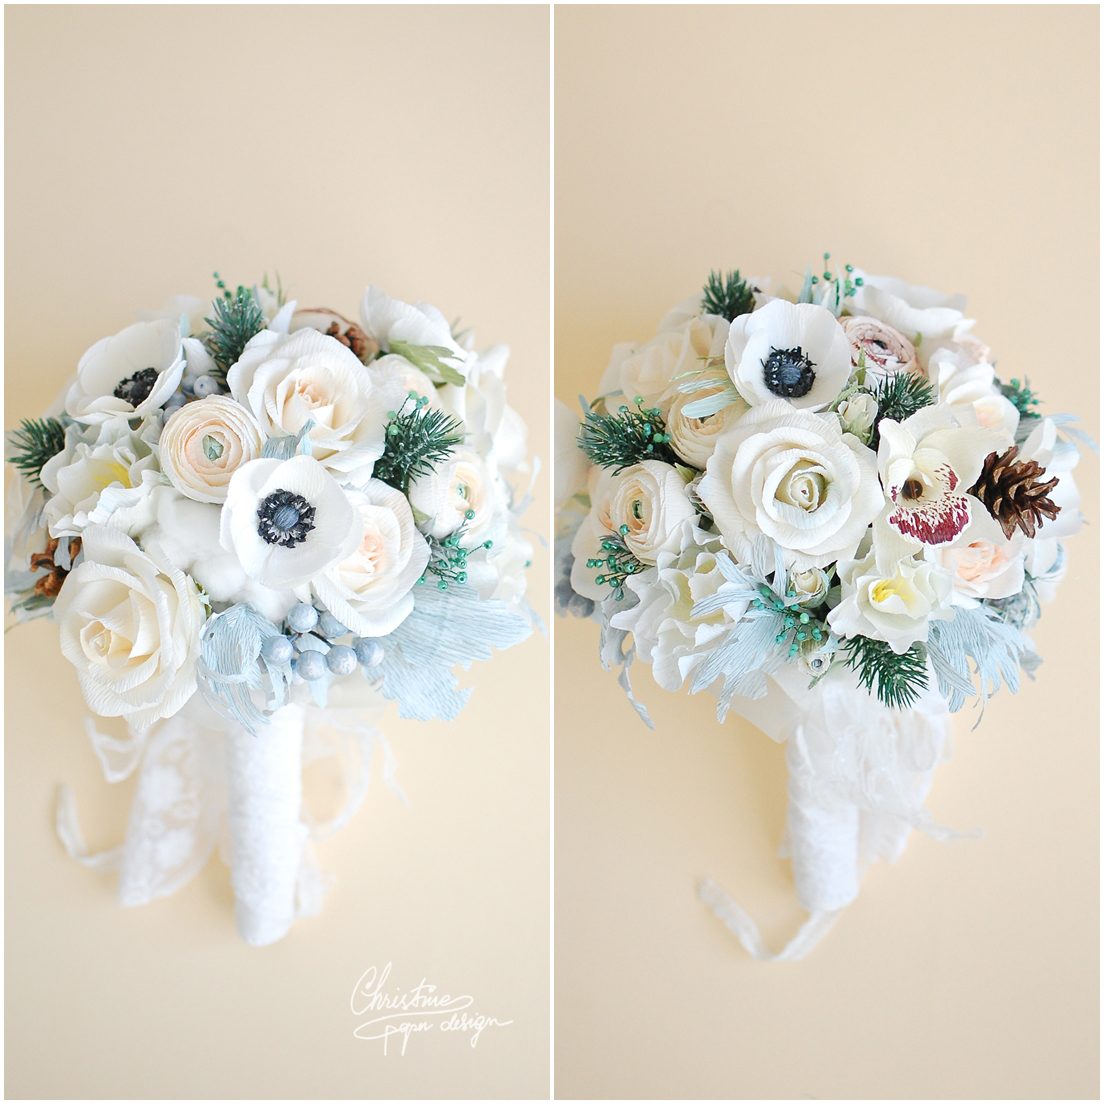 Winter theme paper flowers bridal bouquet. | Christine Paper Design